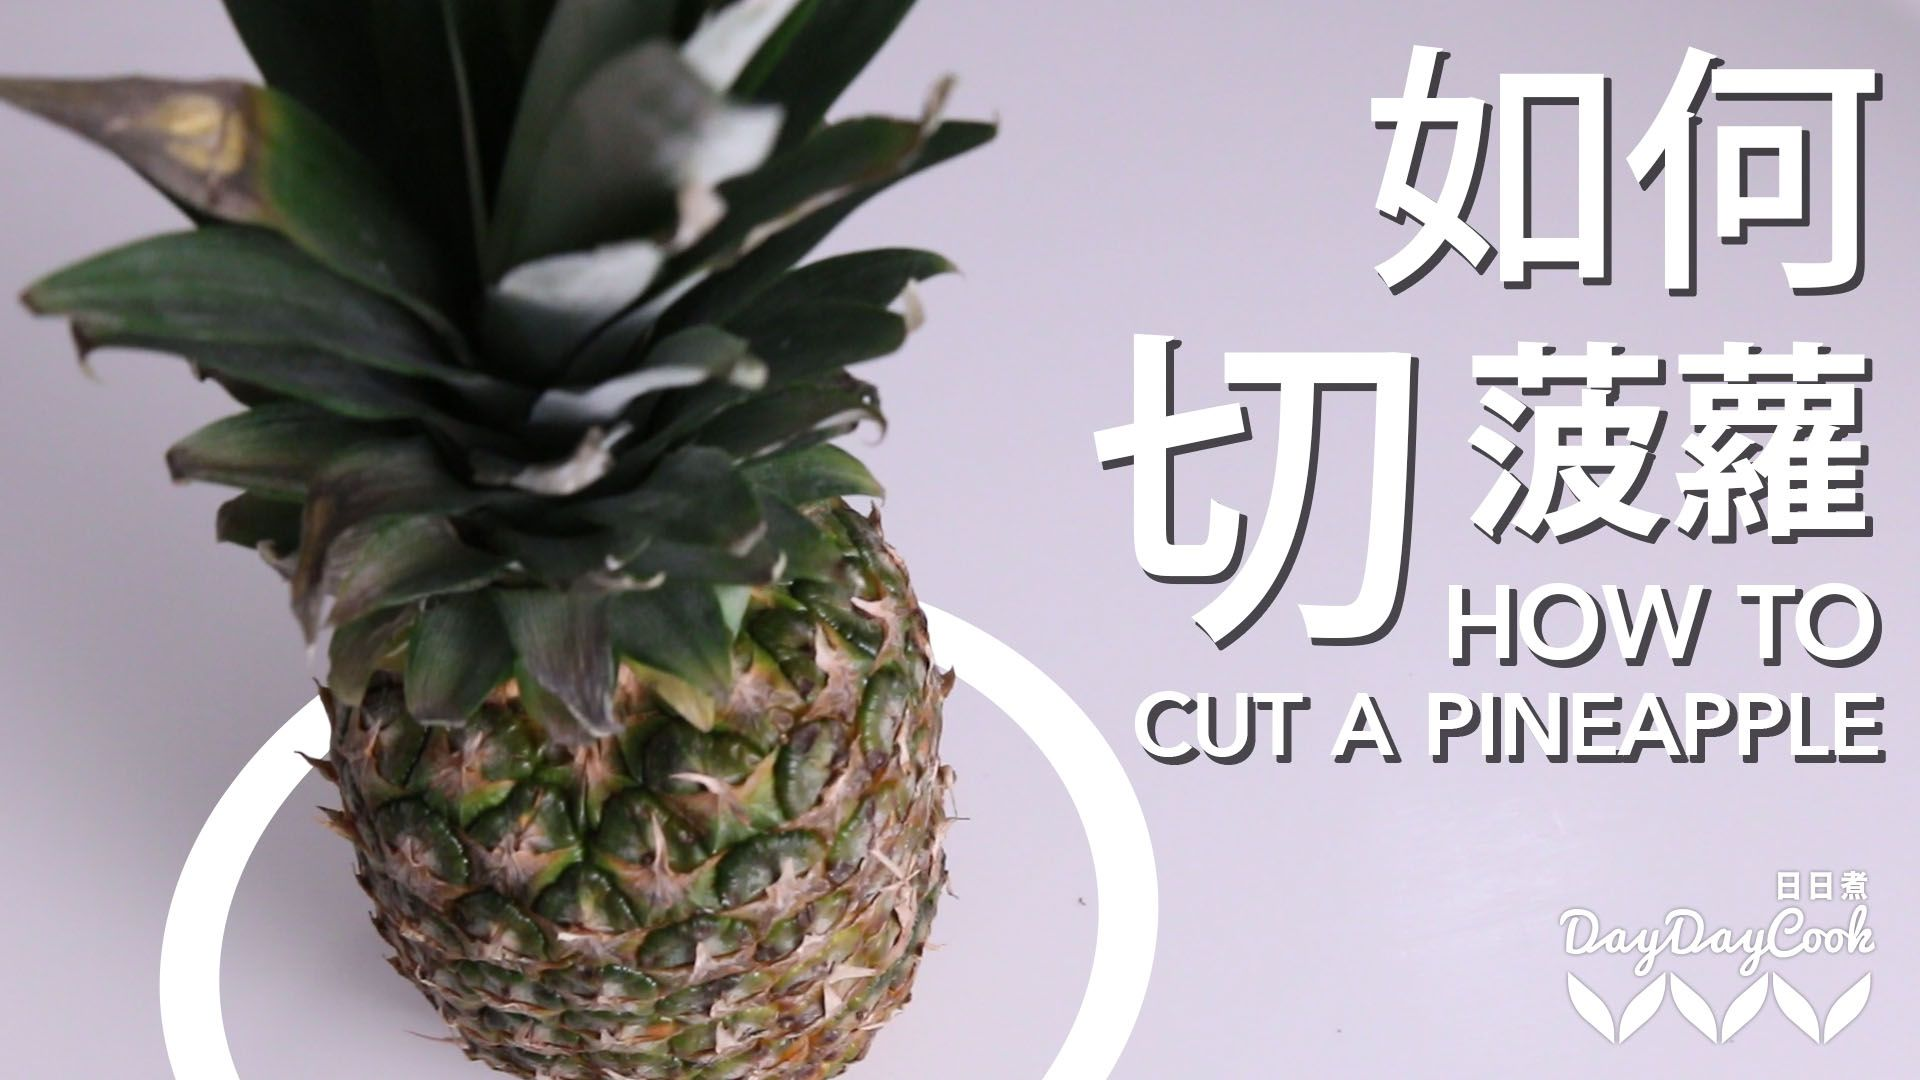 How to cut pineapple? Simple and easy! Click here and take a look!